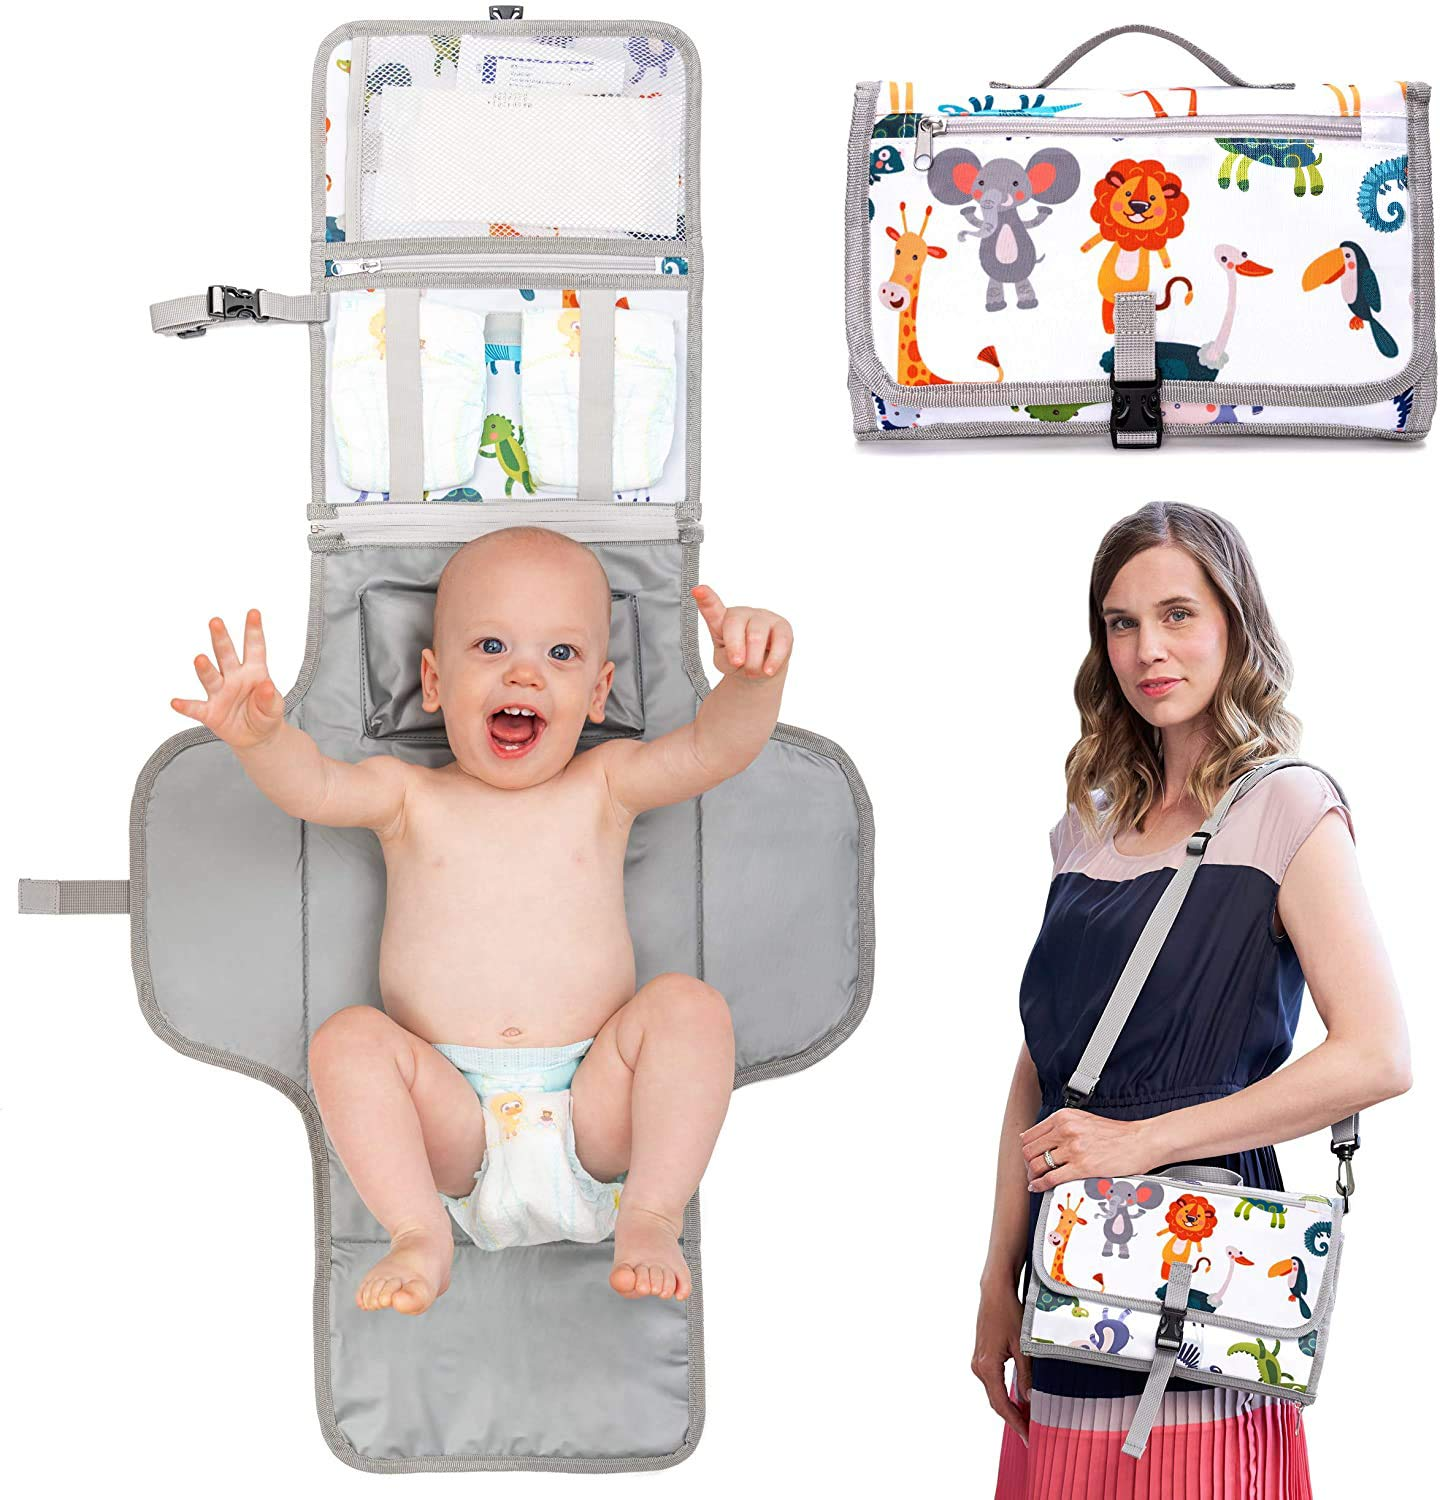 Waterproof Diaper Changing Mat and Diaper Bag Newborn Essentials Must Haves New Model 2021 Portable Changing Pad for Baby Travel Changing Clutch Easily Washable and Hypoallergenic Material